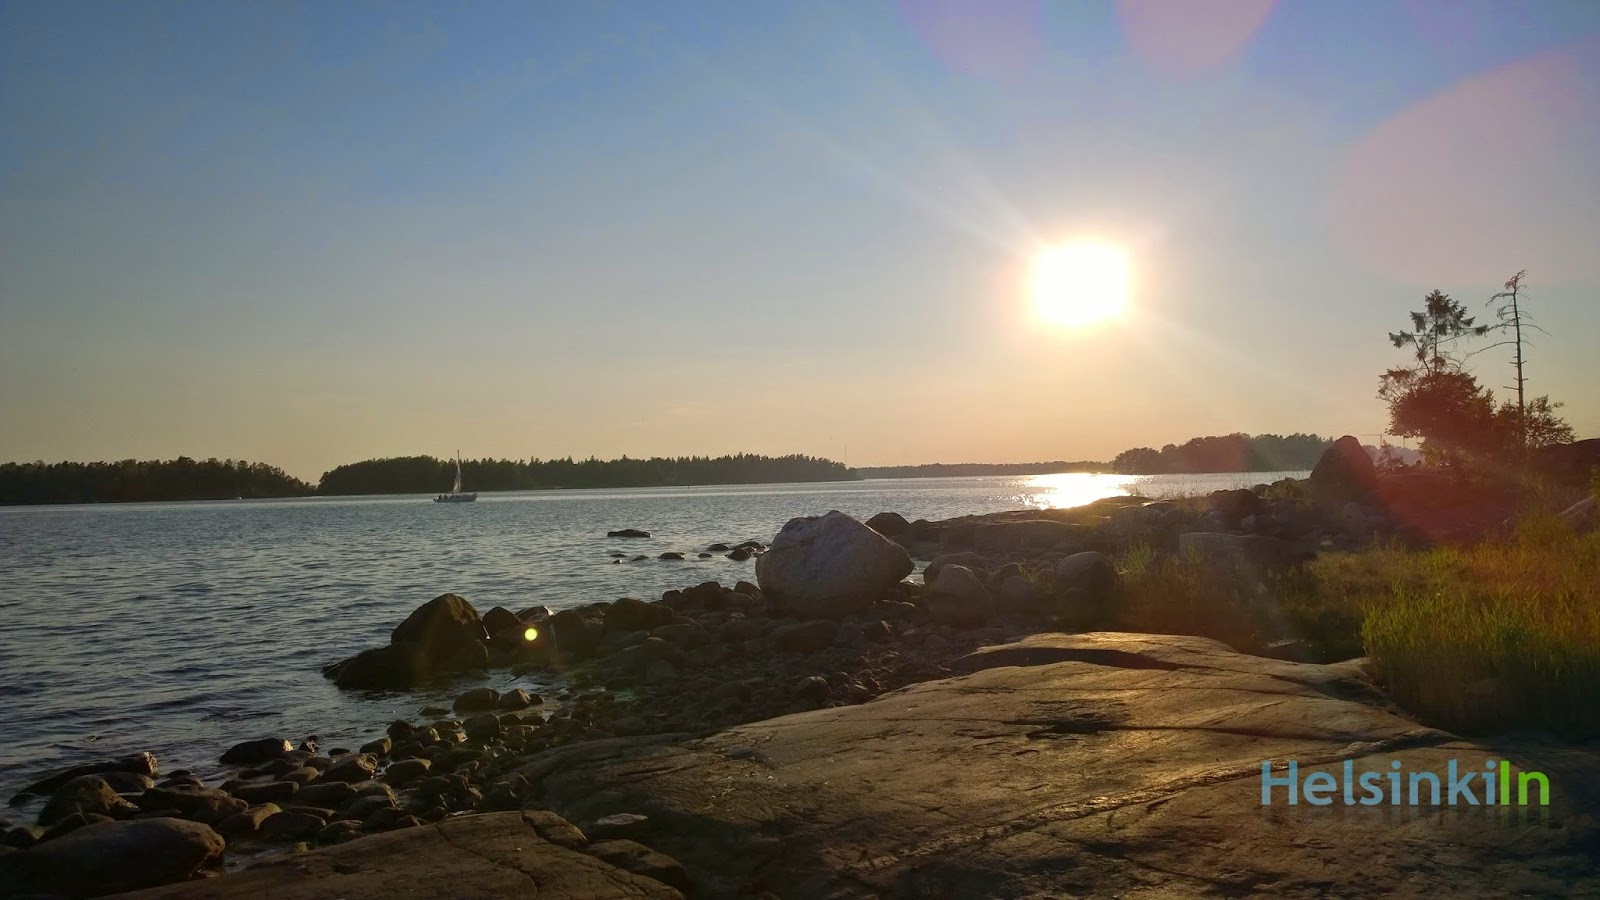 Rocks at Lauttasaari